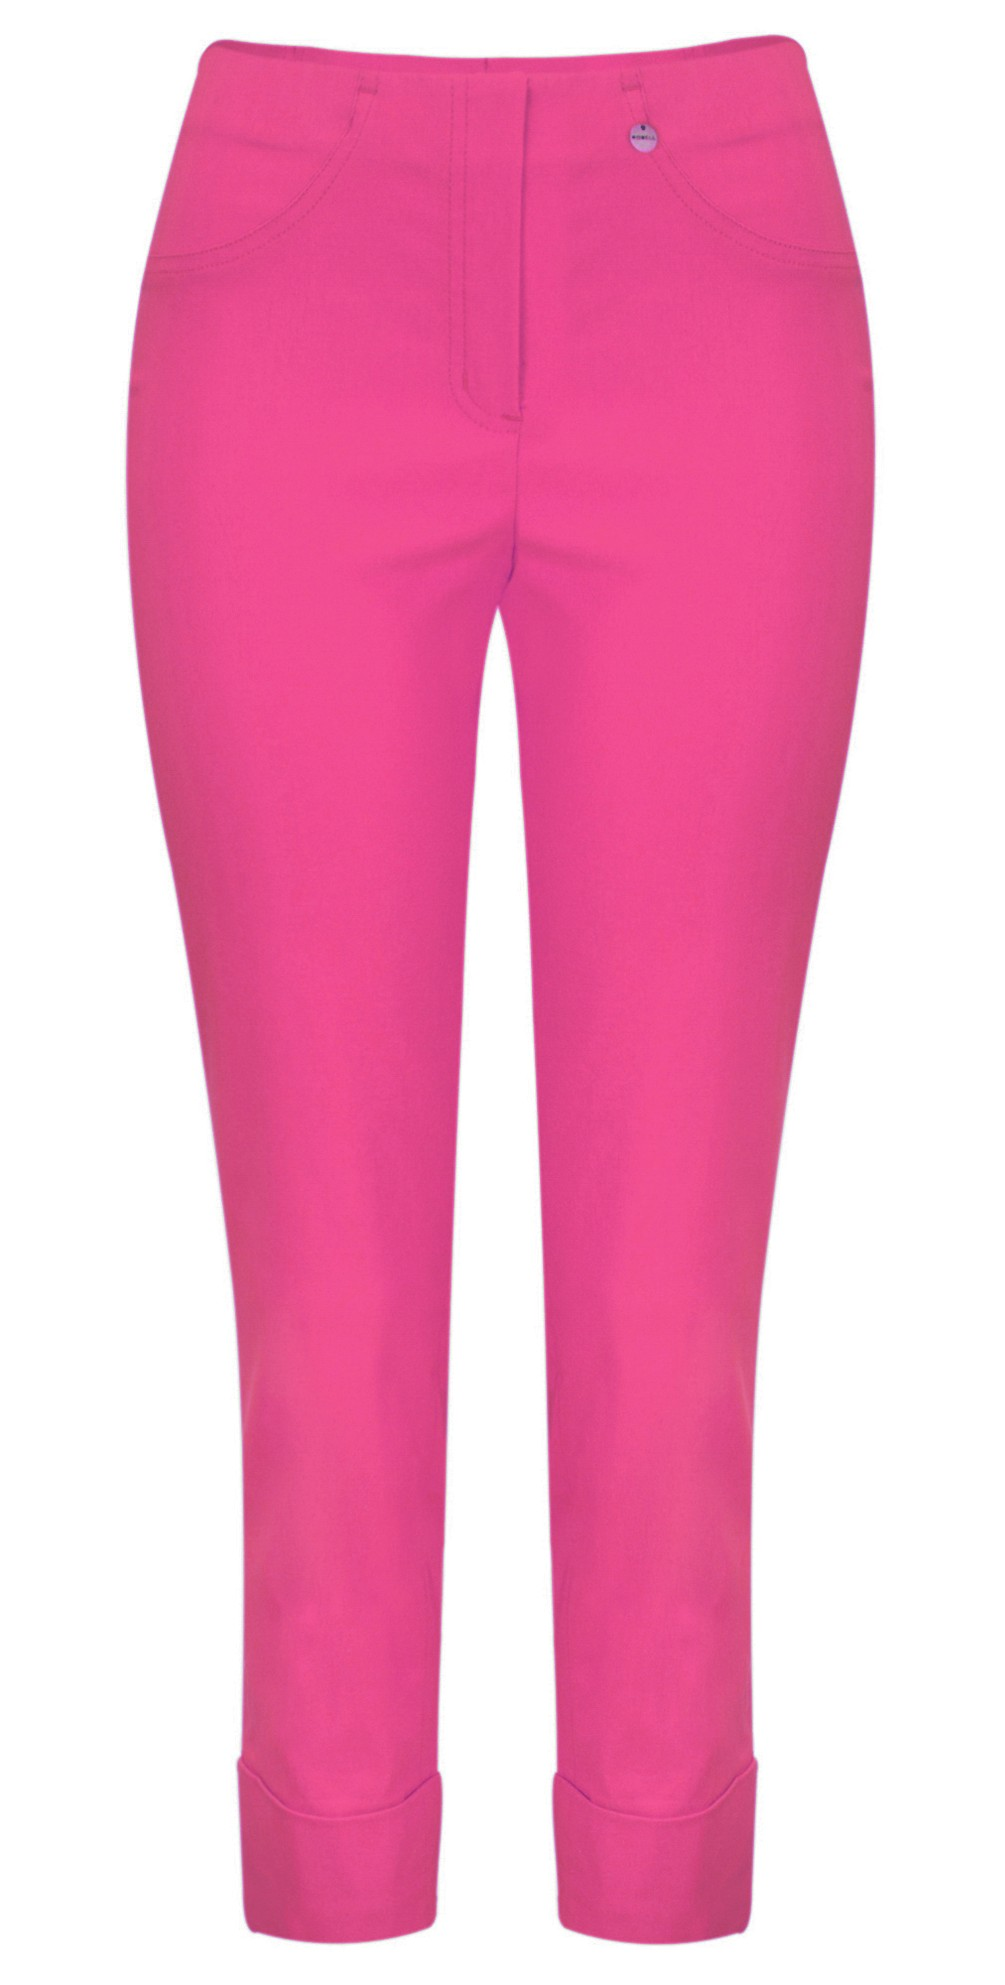 Bella 09 Orchid Pink Ankle Length 7/8 Cuff Trouser main image